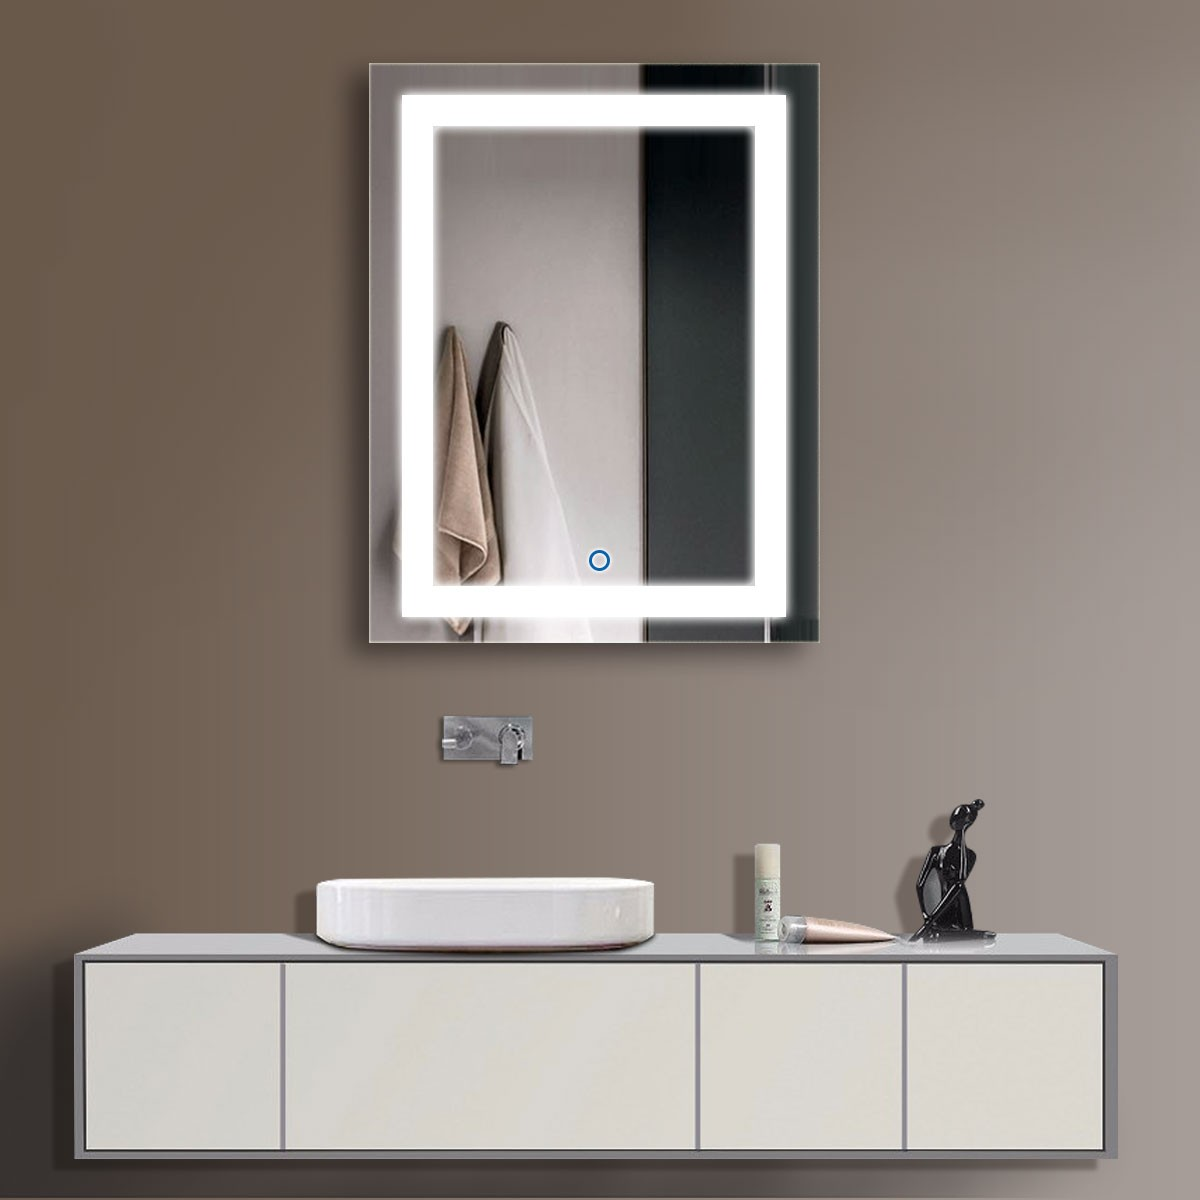 24 x 32 In Vertical LED Bathroom Mirror with Touch Button (DK-OD-CK168)